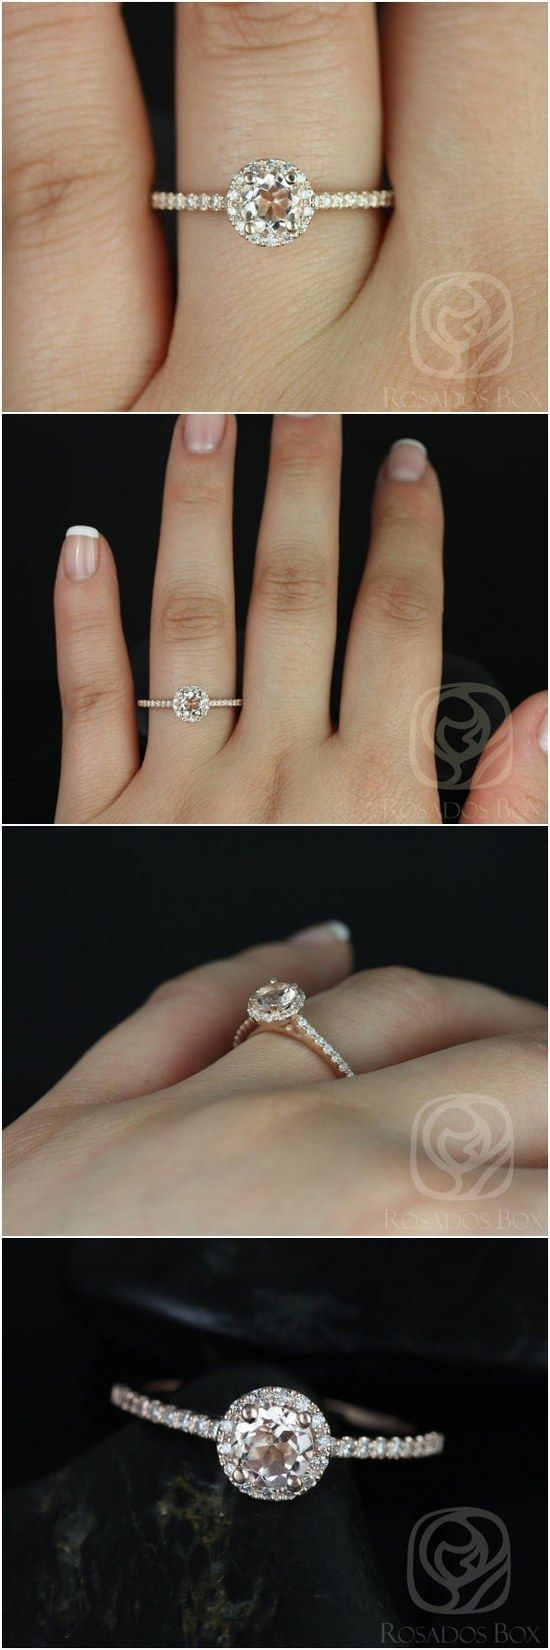 inexpensive wedding rings discount wedding rings 24 Etsy BUDGET FRIENDLY Engagement Rings Under 1